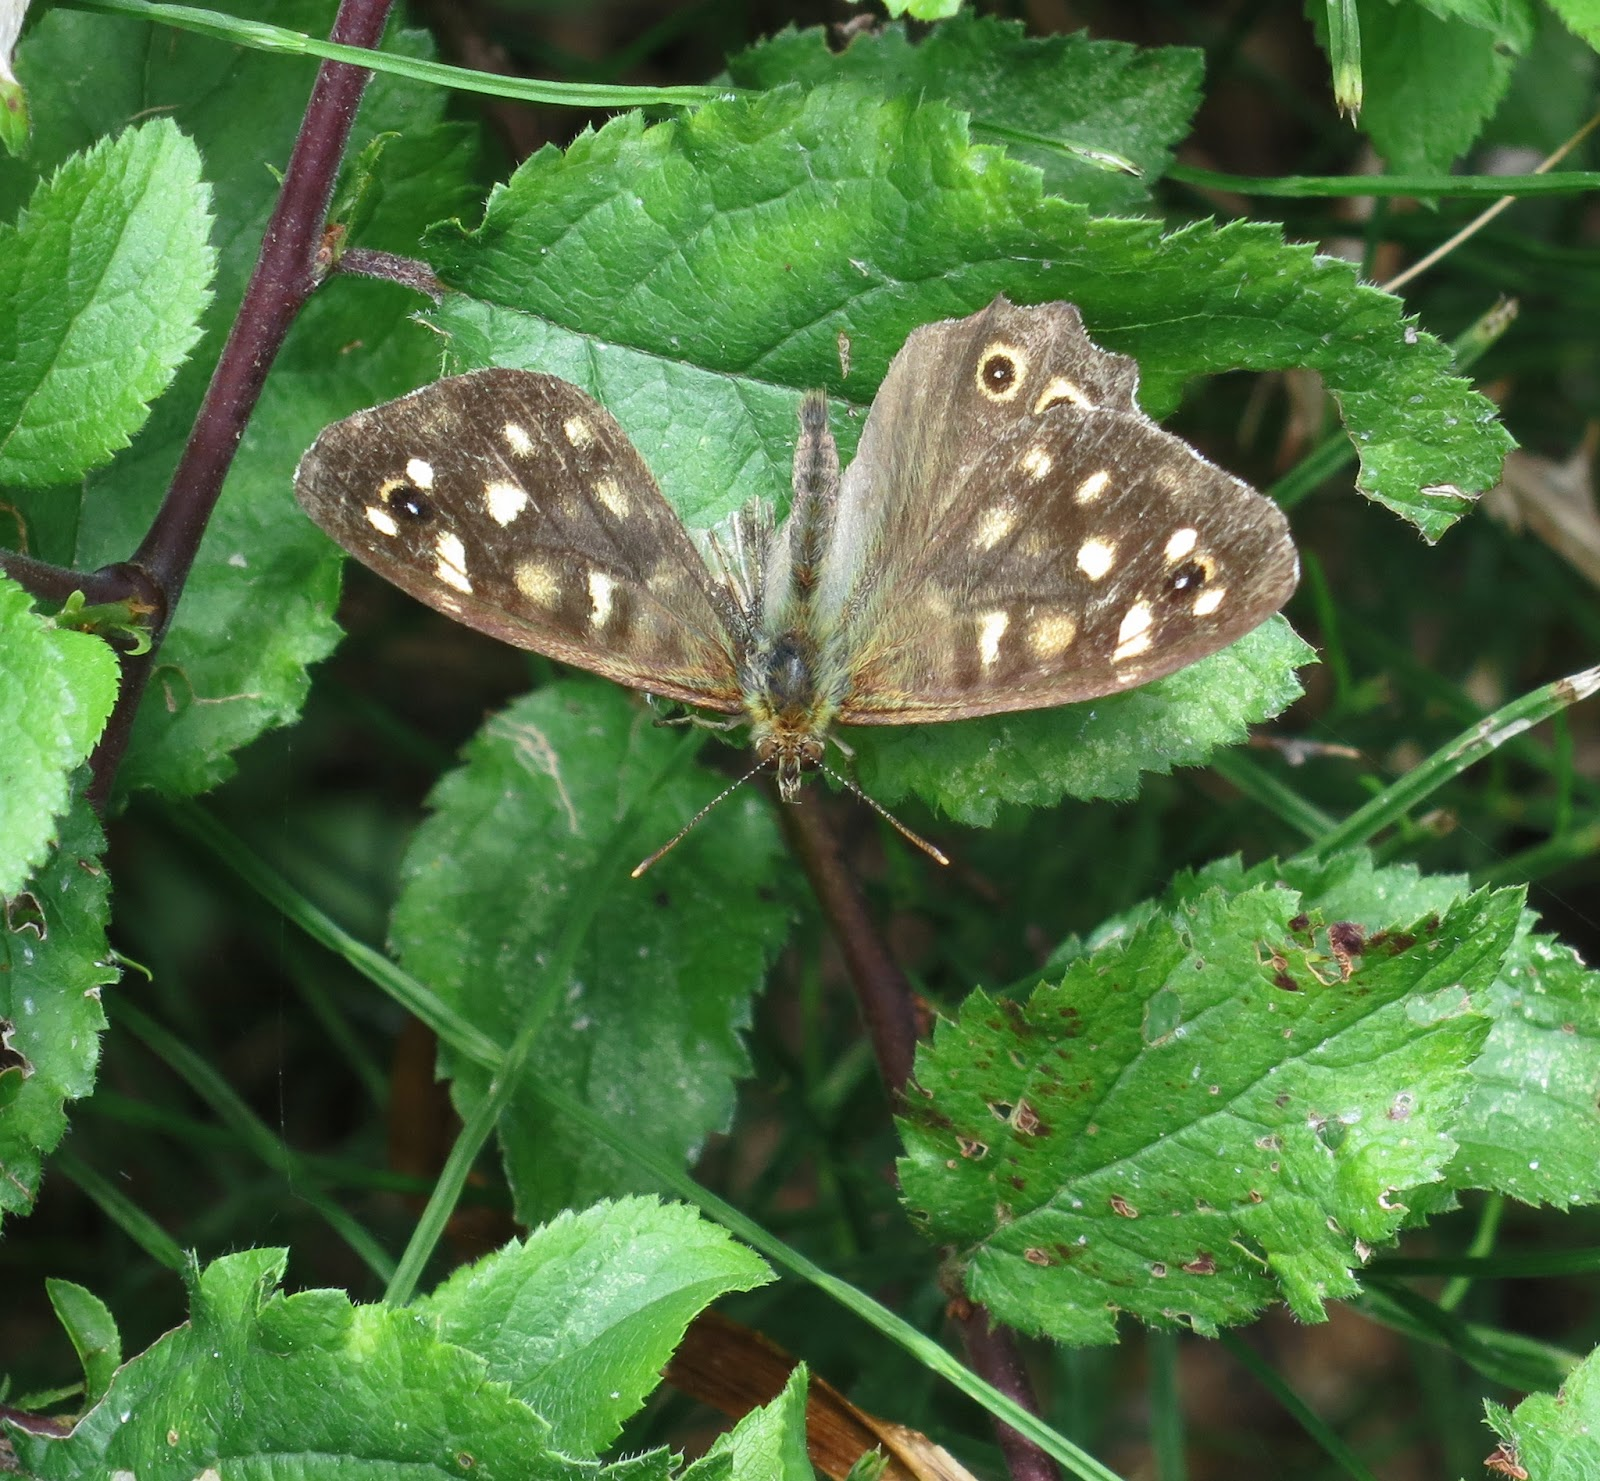 Brown butterfly with major part of one wing missing.